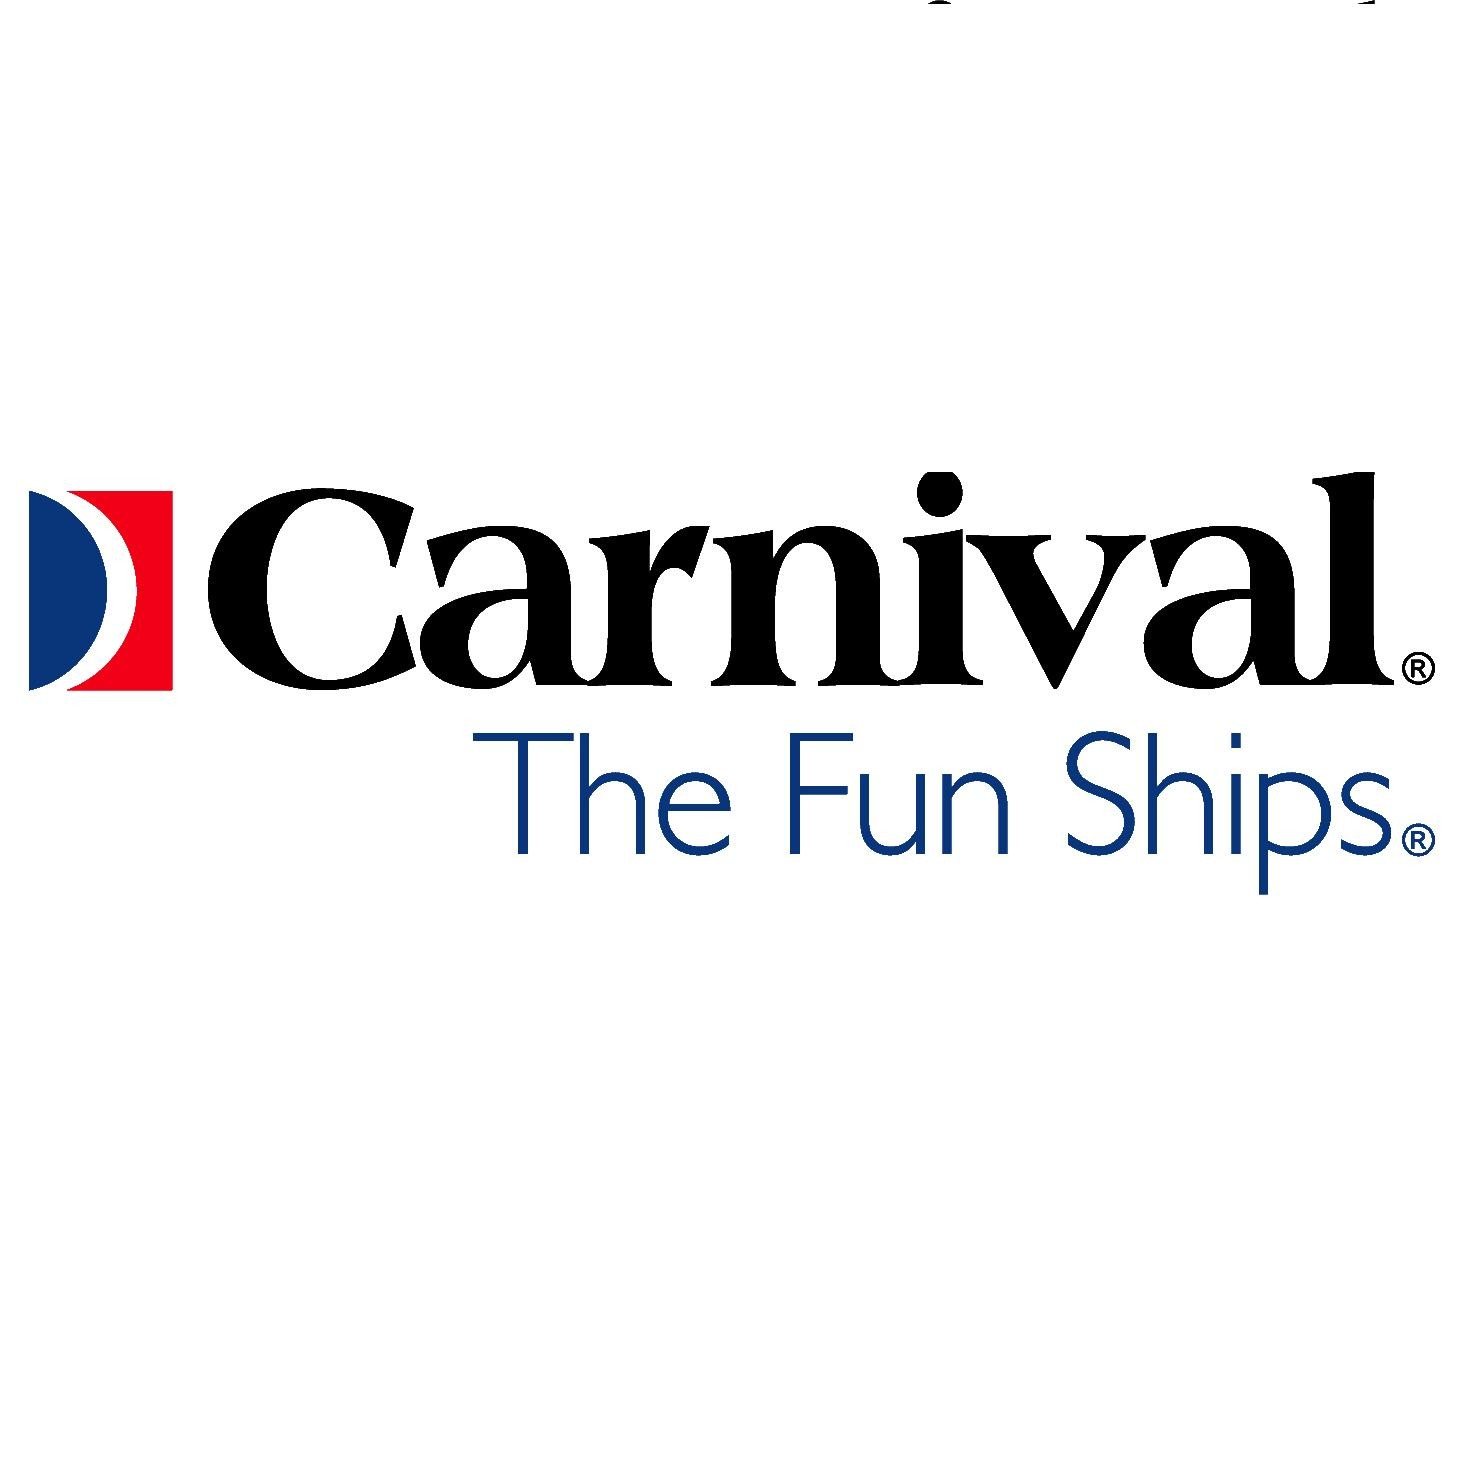 carnival corporation plc analysis 2010 Office of chief counsel division of corporation finance december 17, 2013 page 3  analysis  the proposal may be excluded under rule.